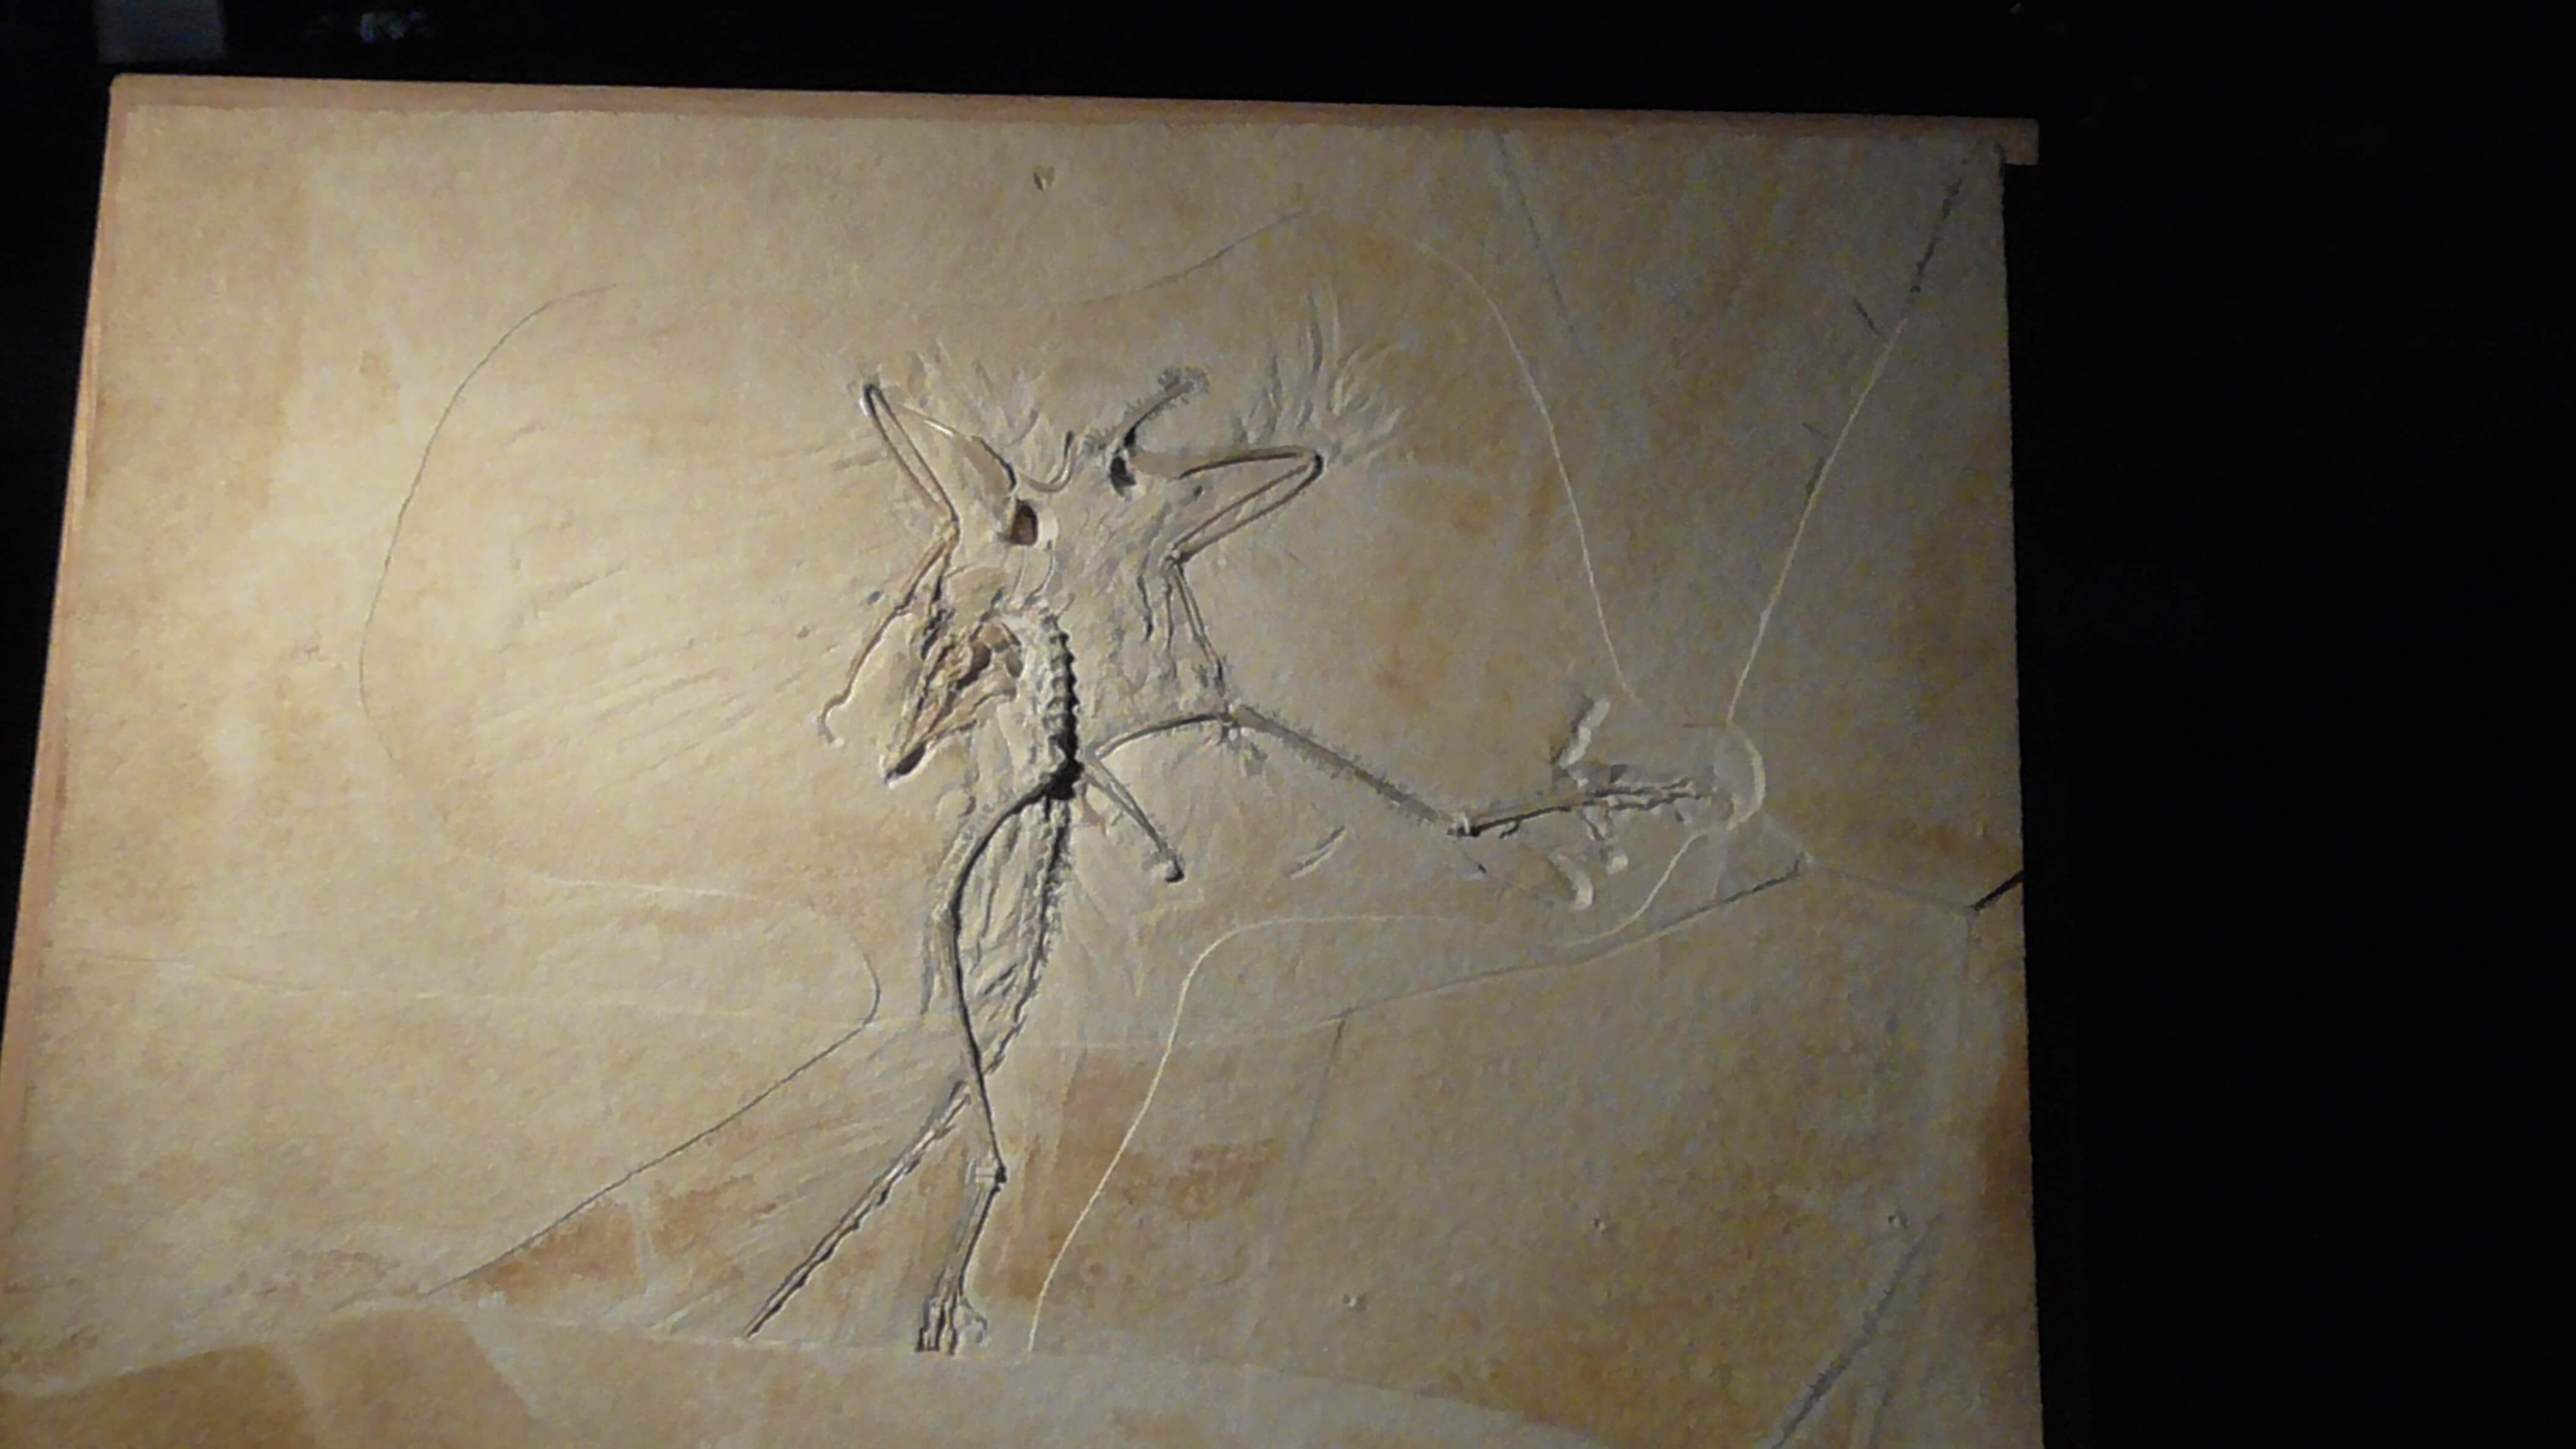 Archaeopteryx - actual fossil